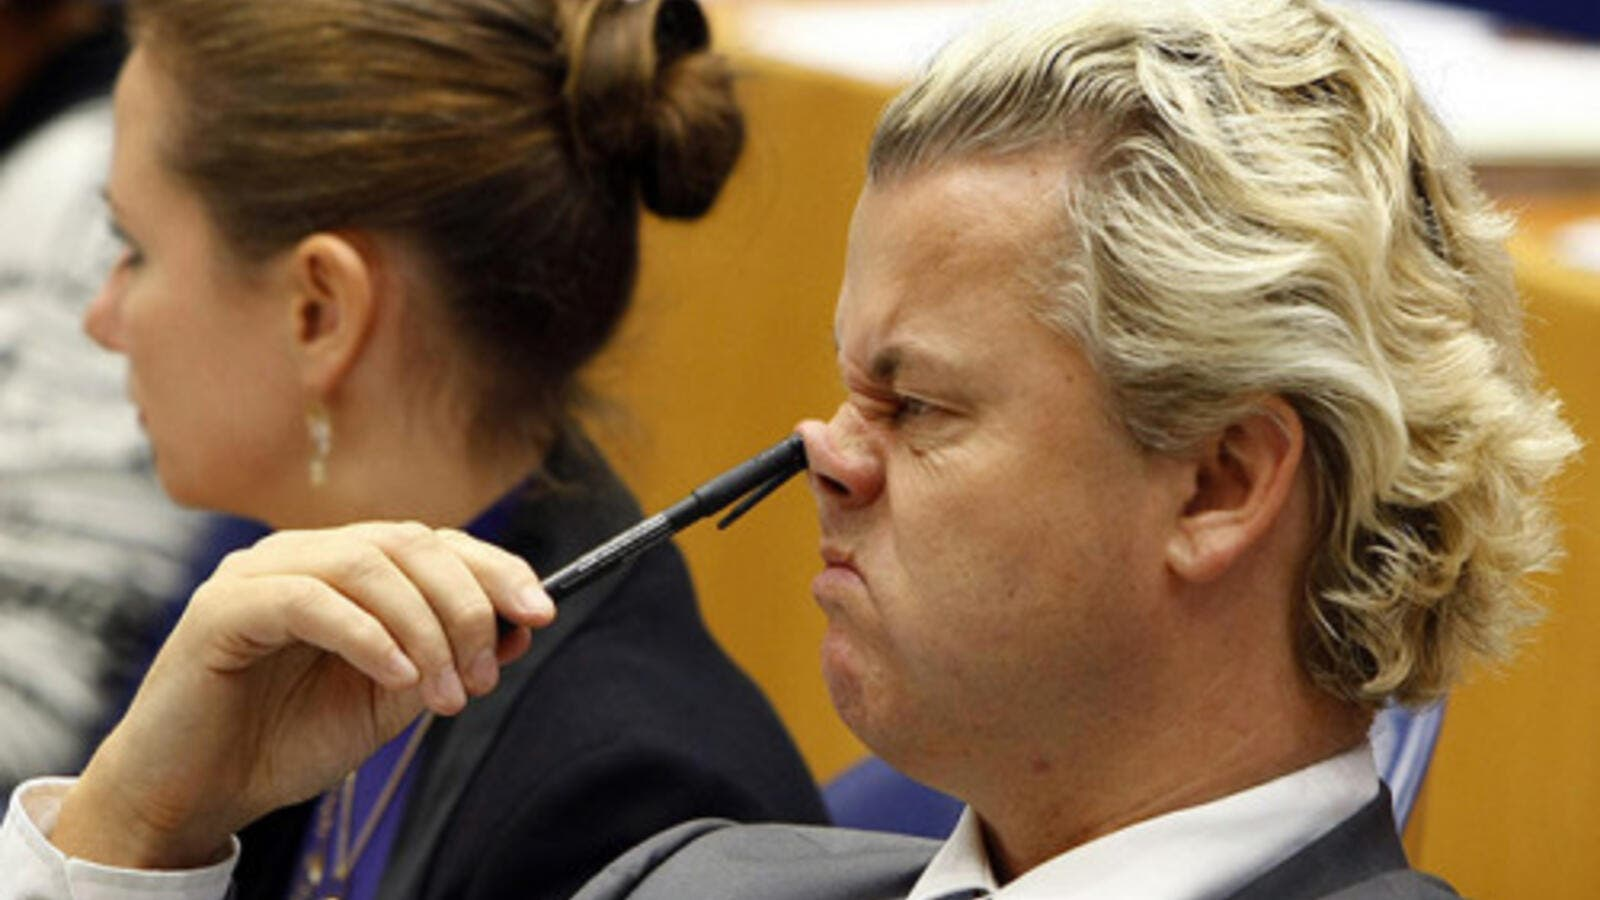 Dutch politician Geert Wilders in 2009: Not only is the man racist but he's unsophisticated too! (AFP/Marcel Antonisse)